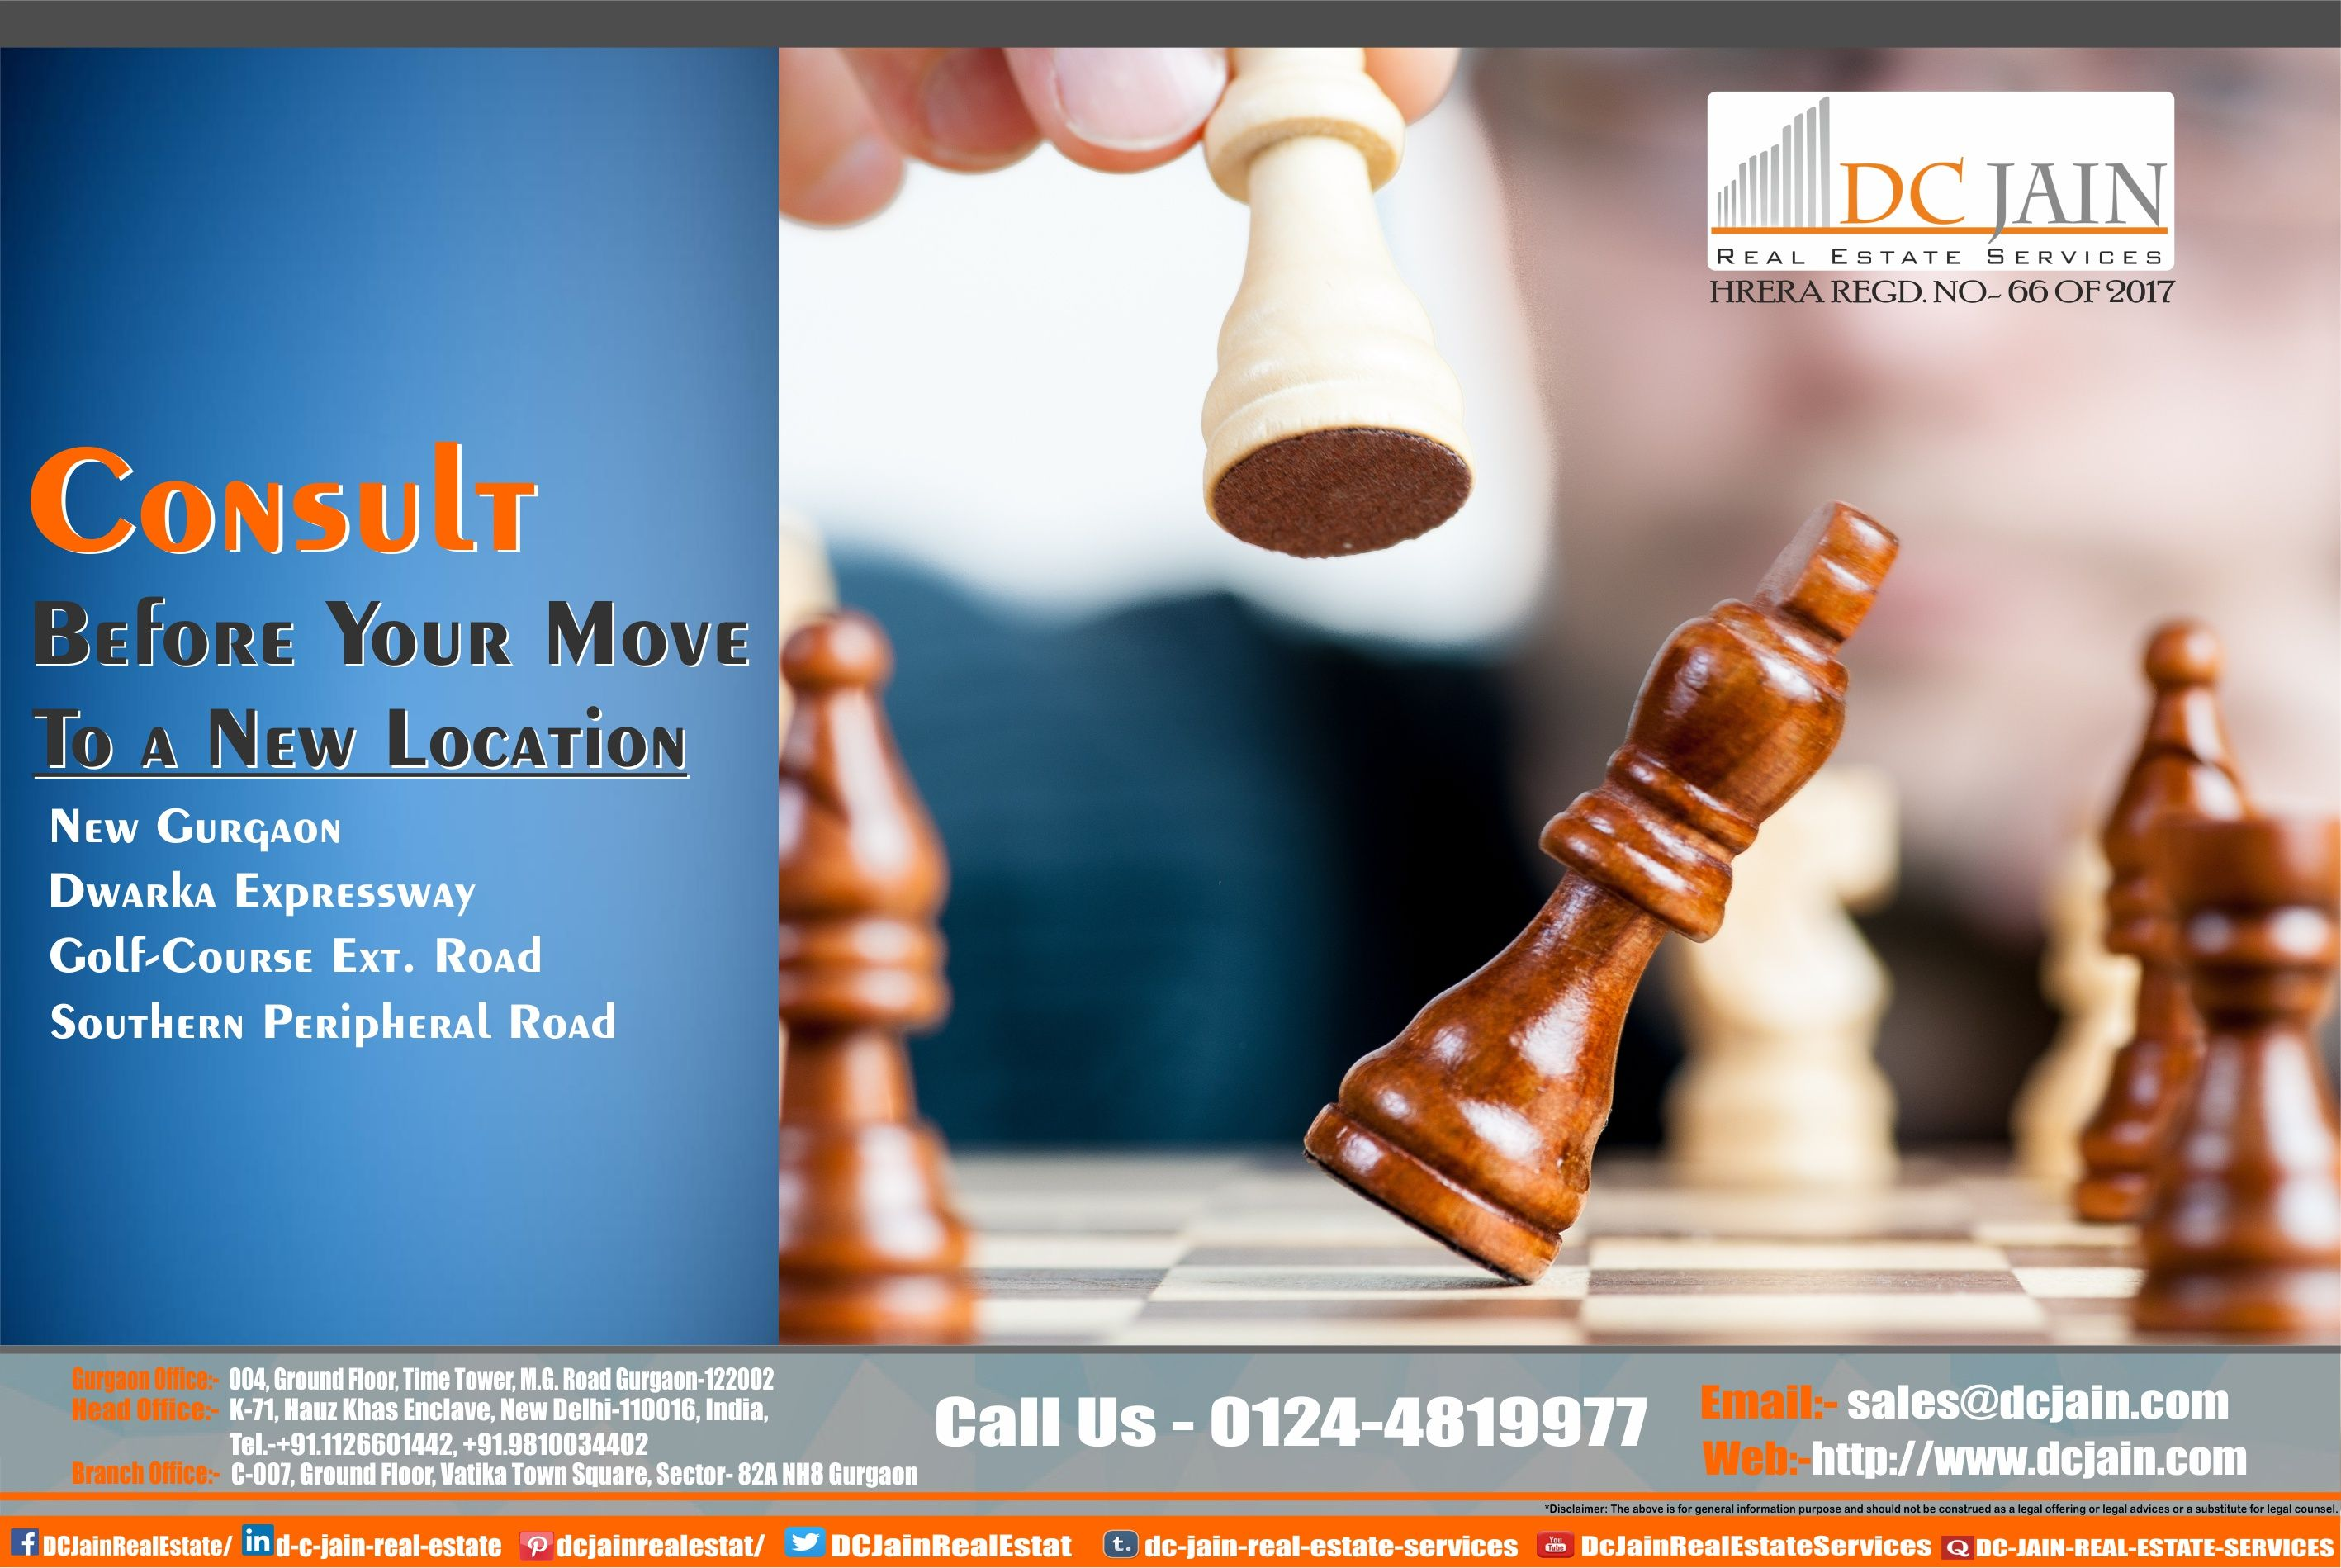 Consult With Us Before Your Move To A New Location 1 New